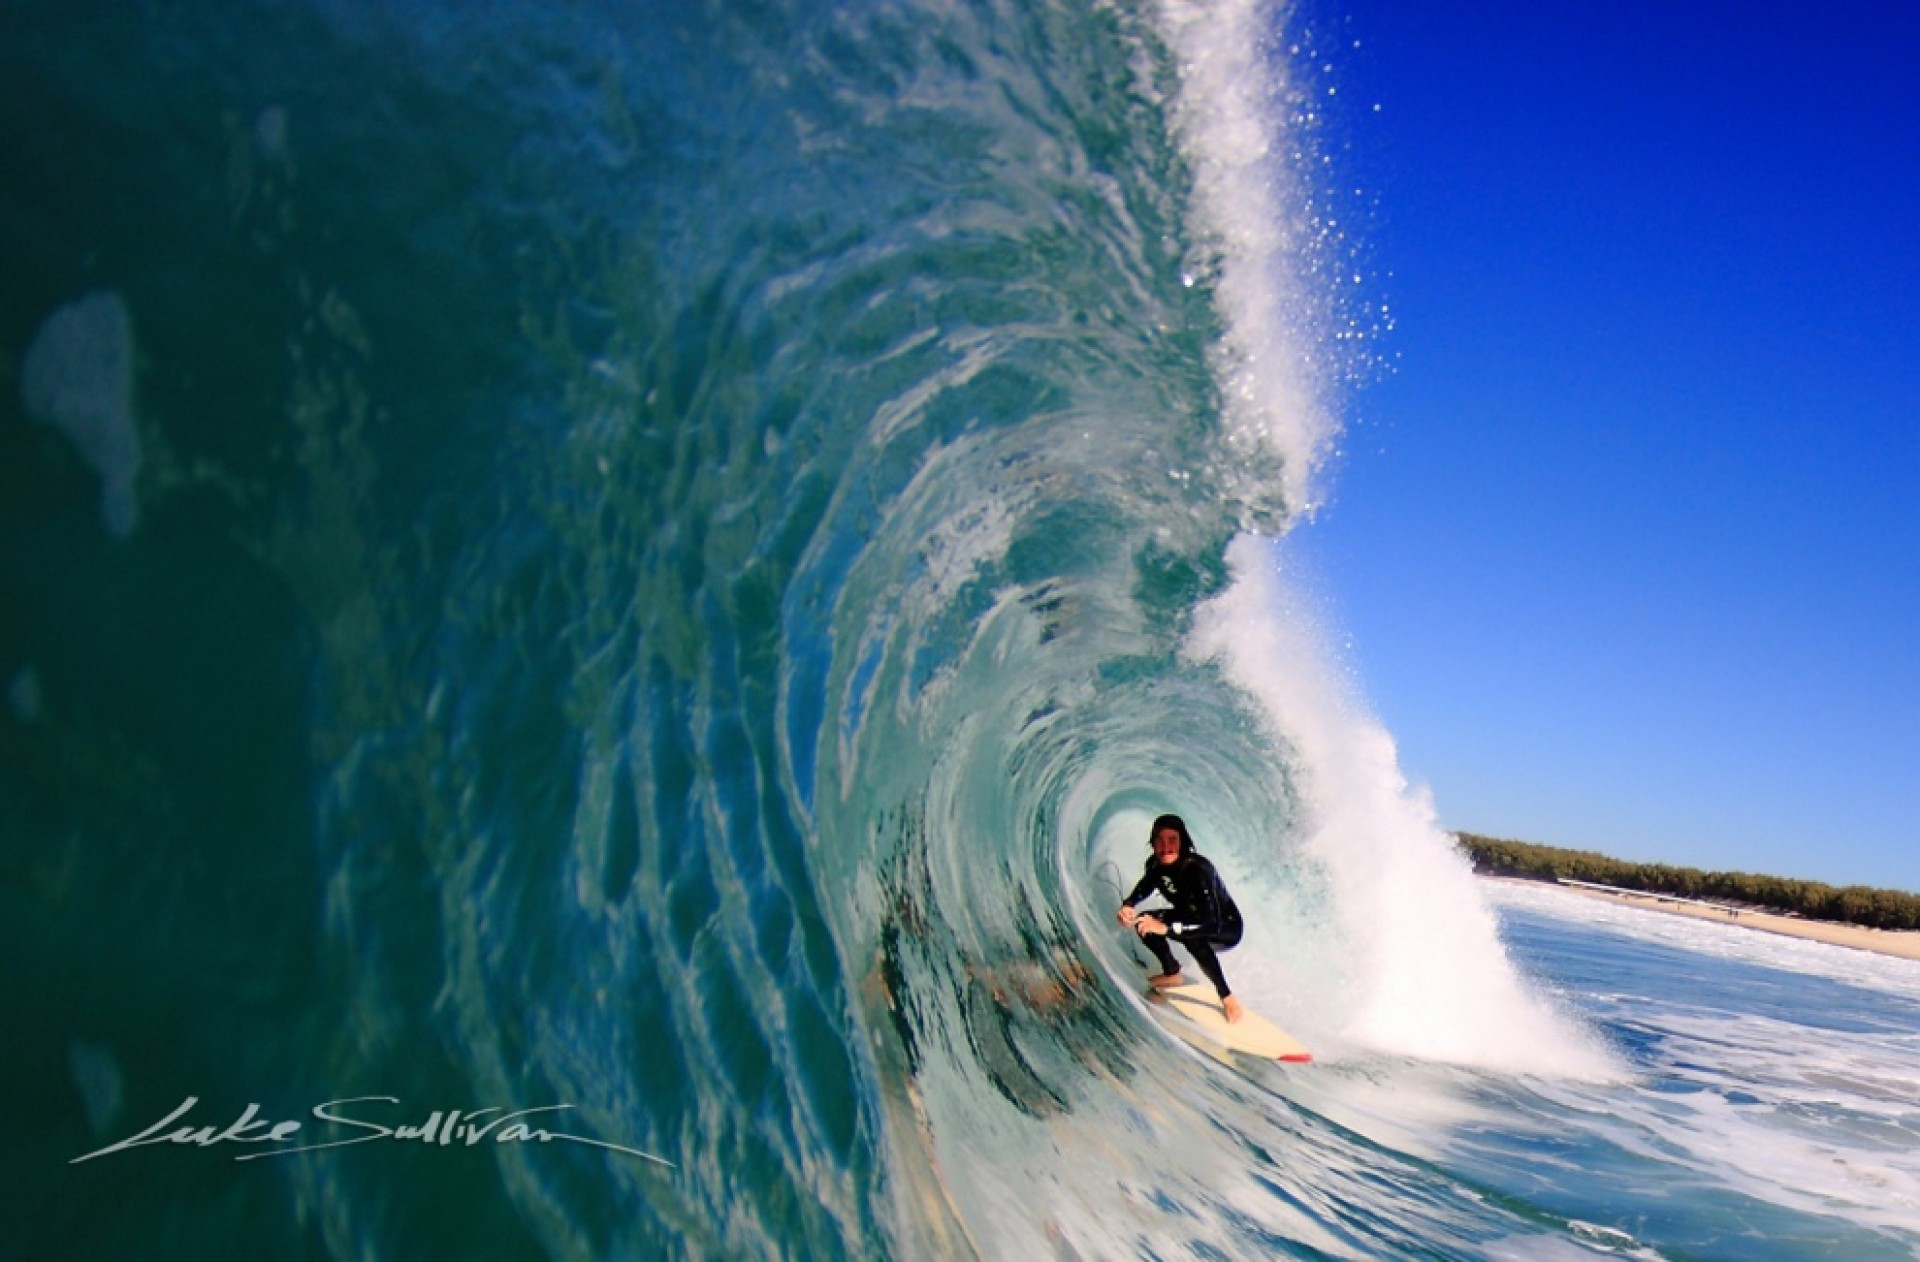 luke sullivan's photo of South Stradbroke Island